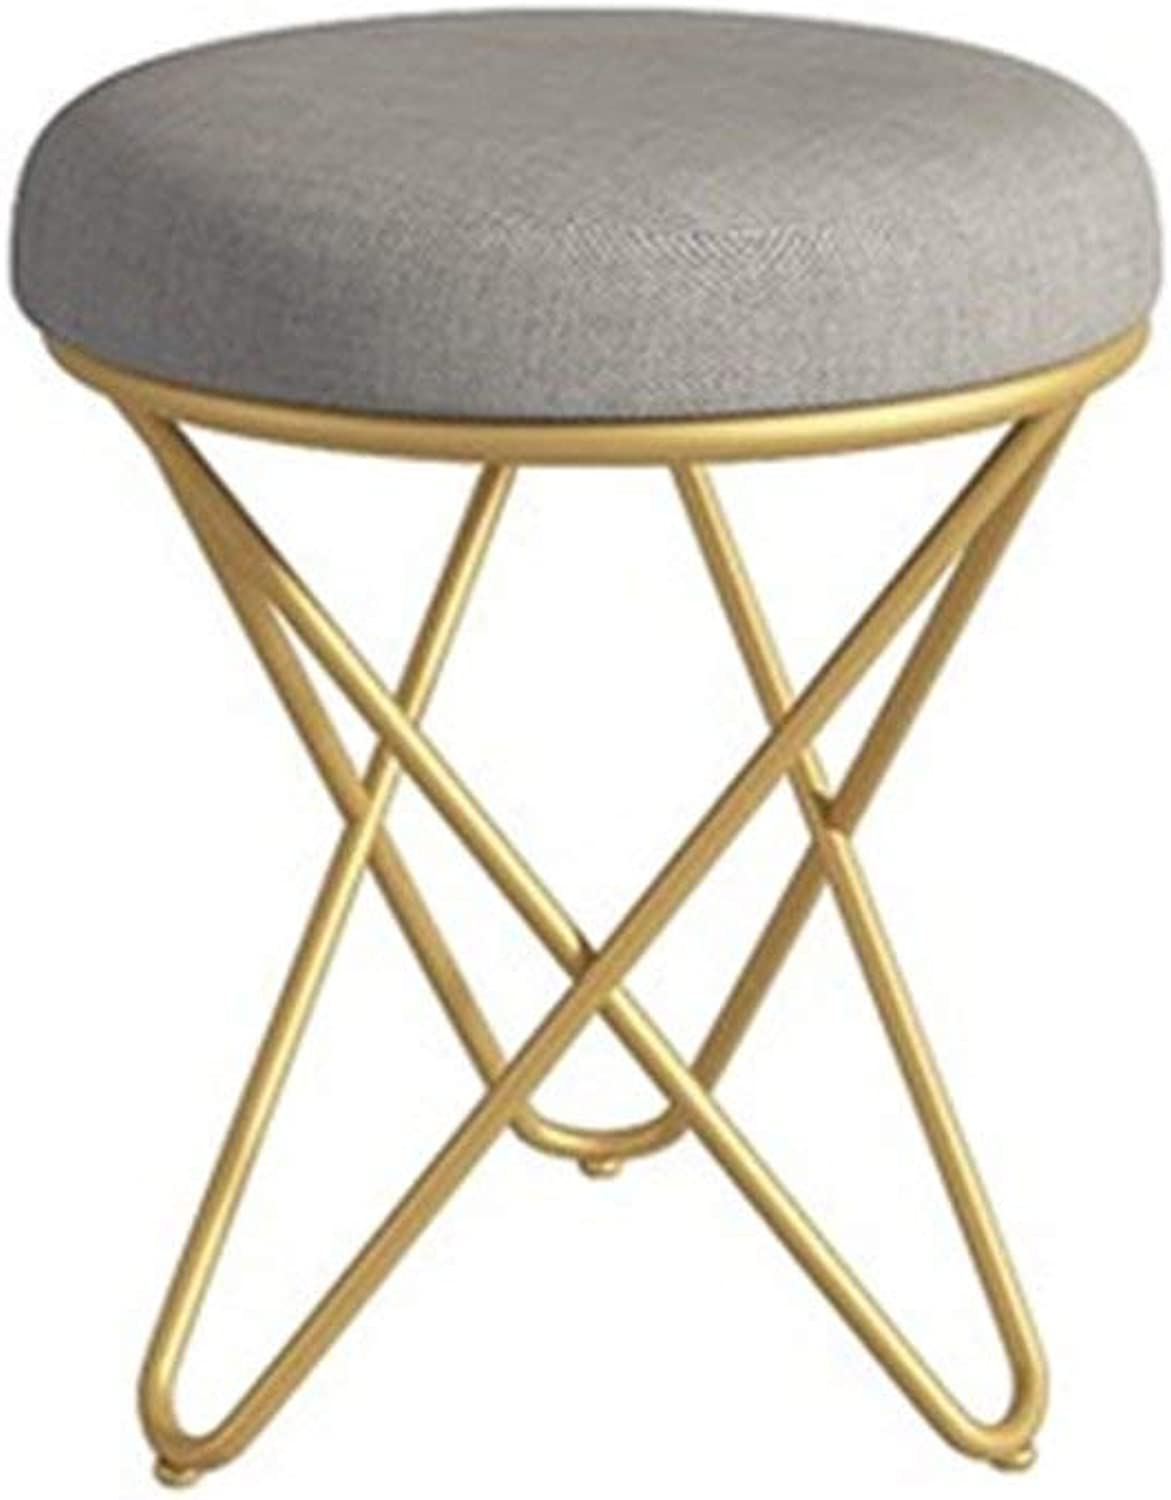 LLYU Stool Nordic Dressing Table Stool Bedroom Living Room Coffee Table Stool Household Low Iron Stool (color   gold)